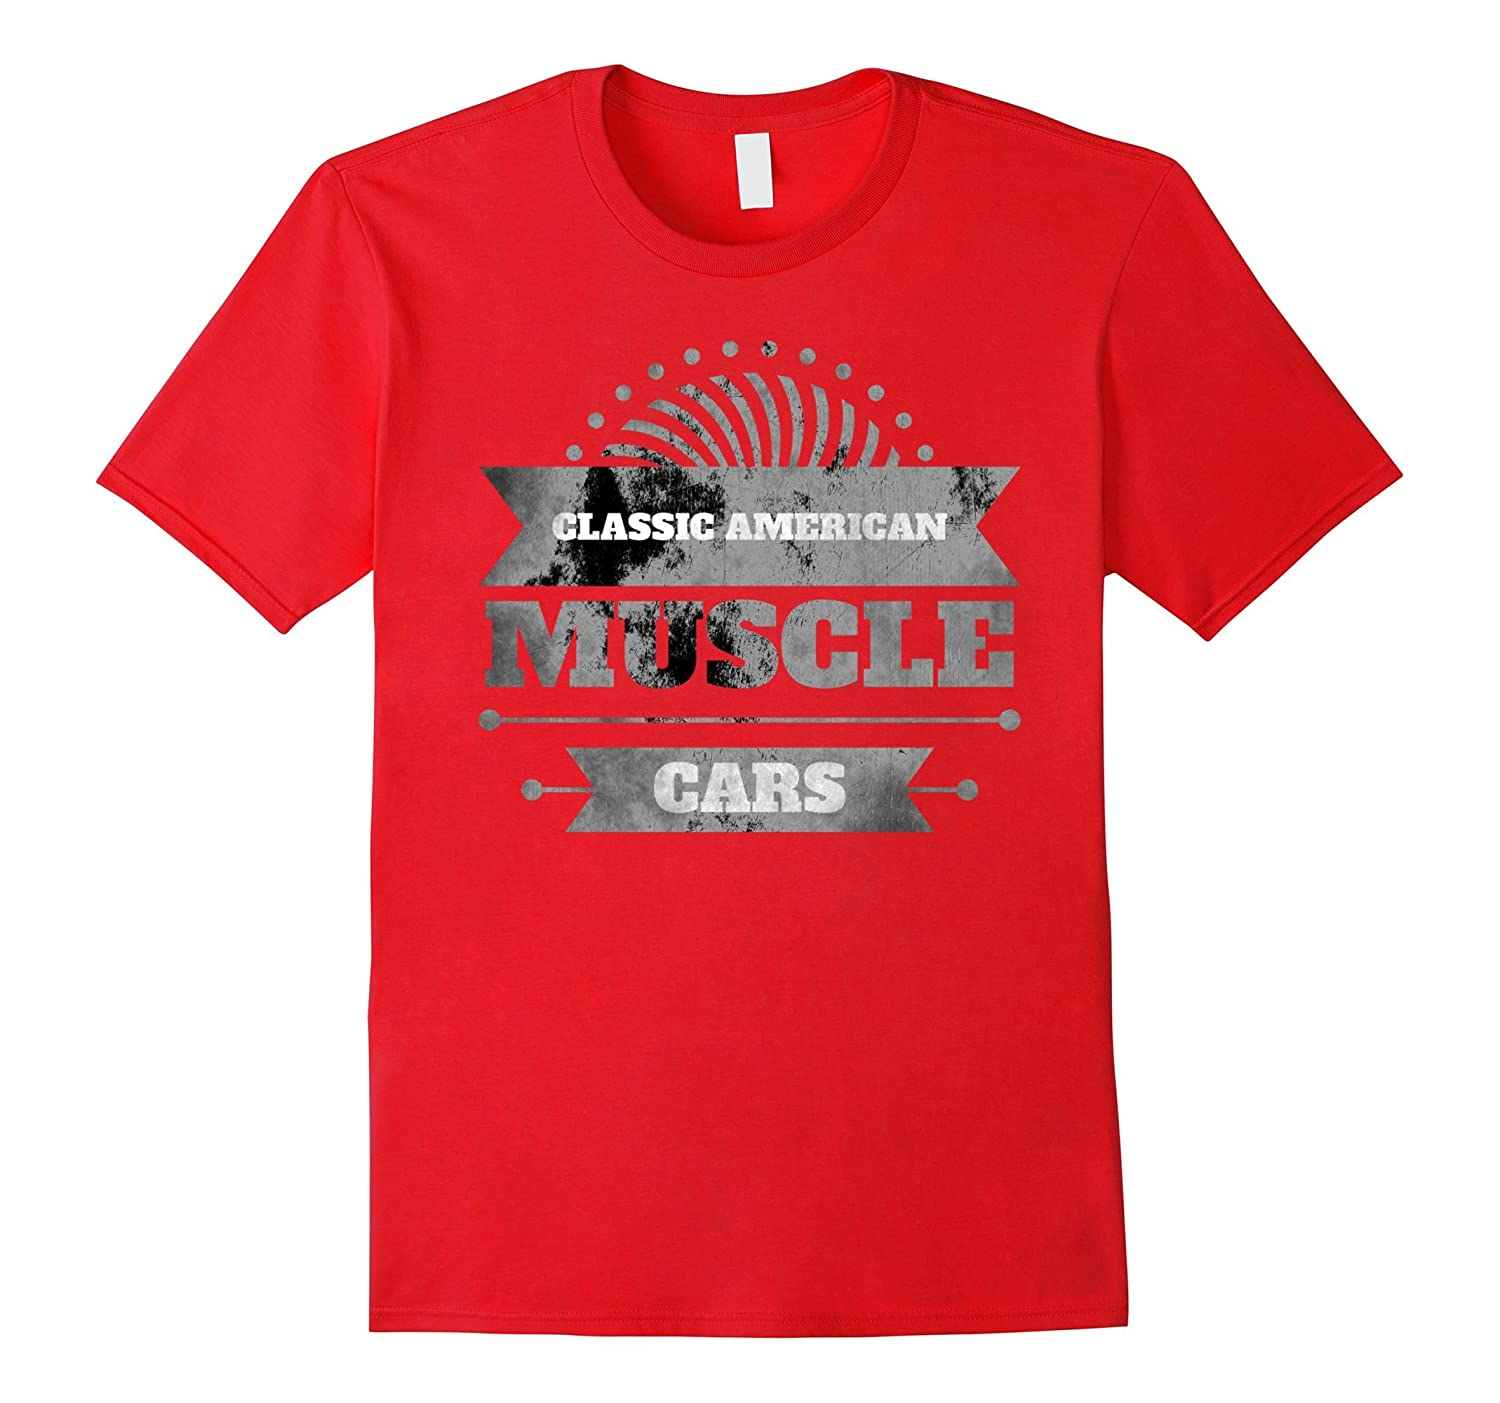 Classic American Muscle Cars Vintage Distressed T-shirt-FL